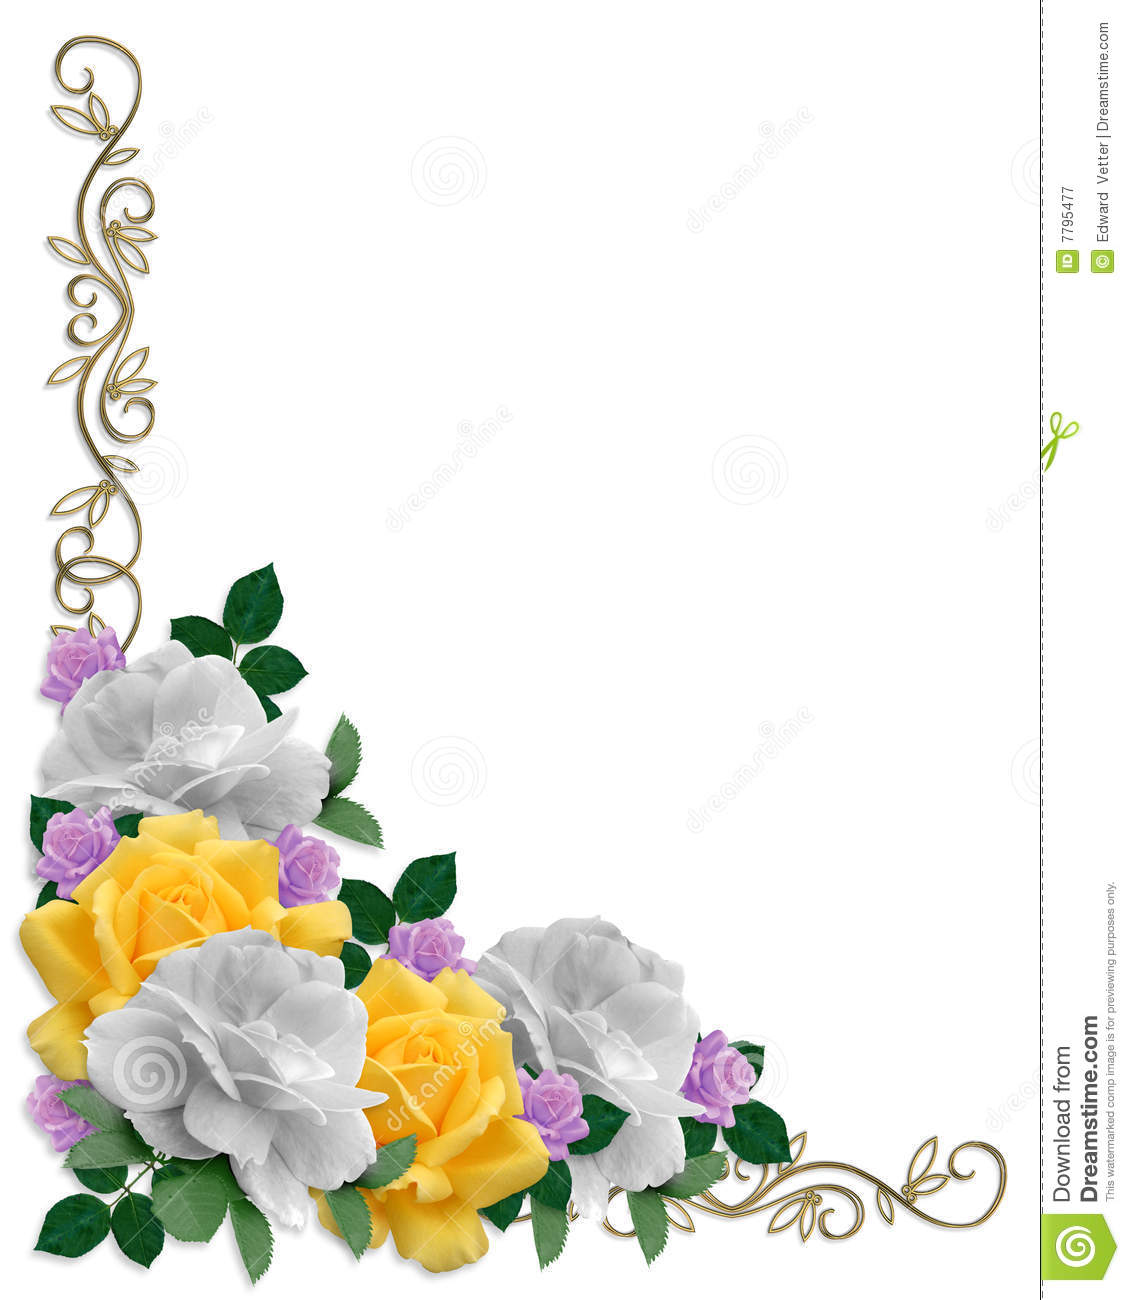 ... Easter or wedding invitation, background, border or frame with copy